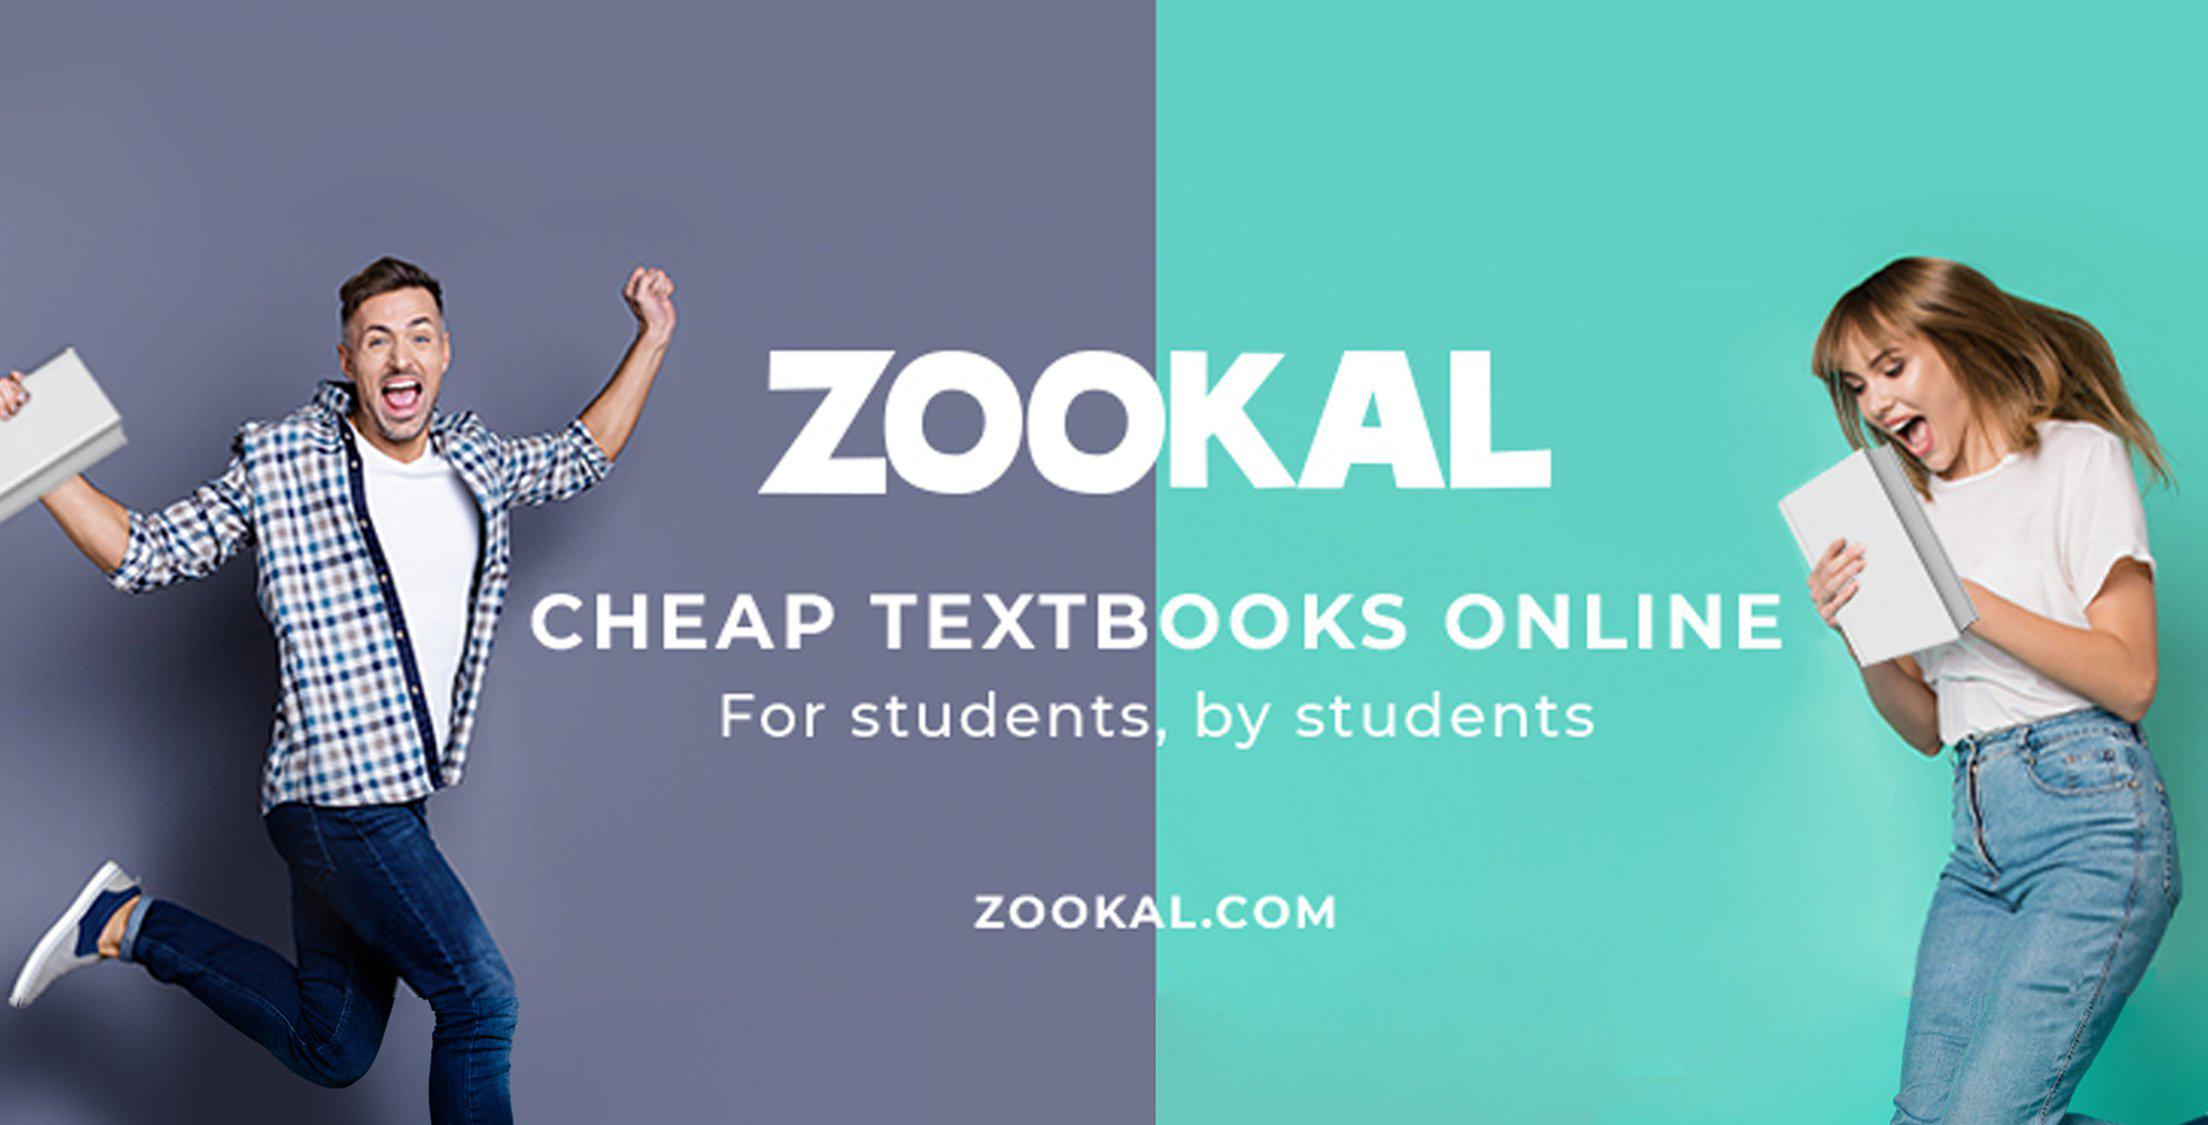 5 reasons you should get your textbooks through Zookal